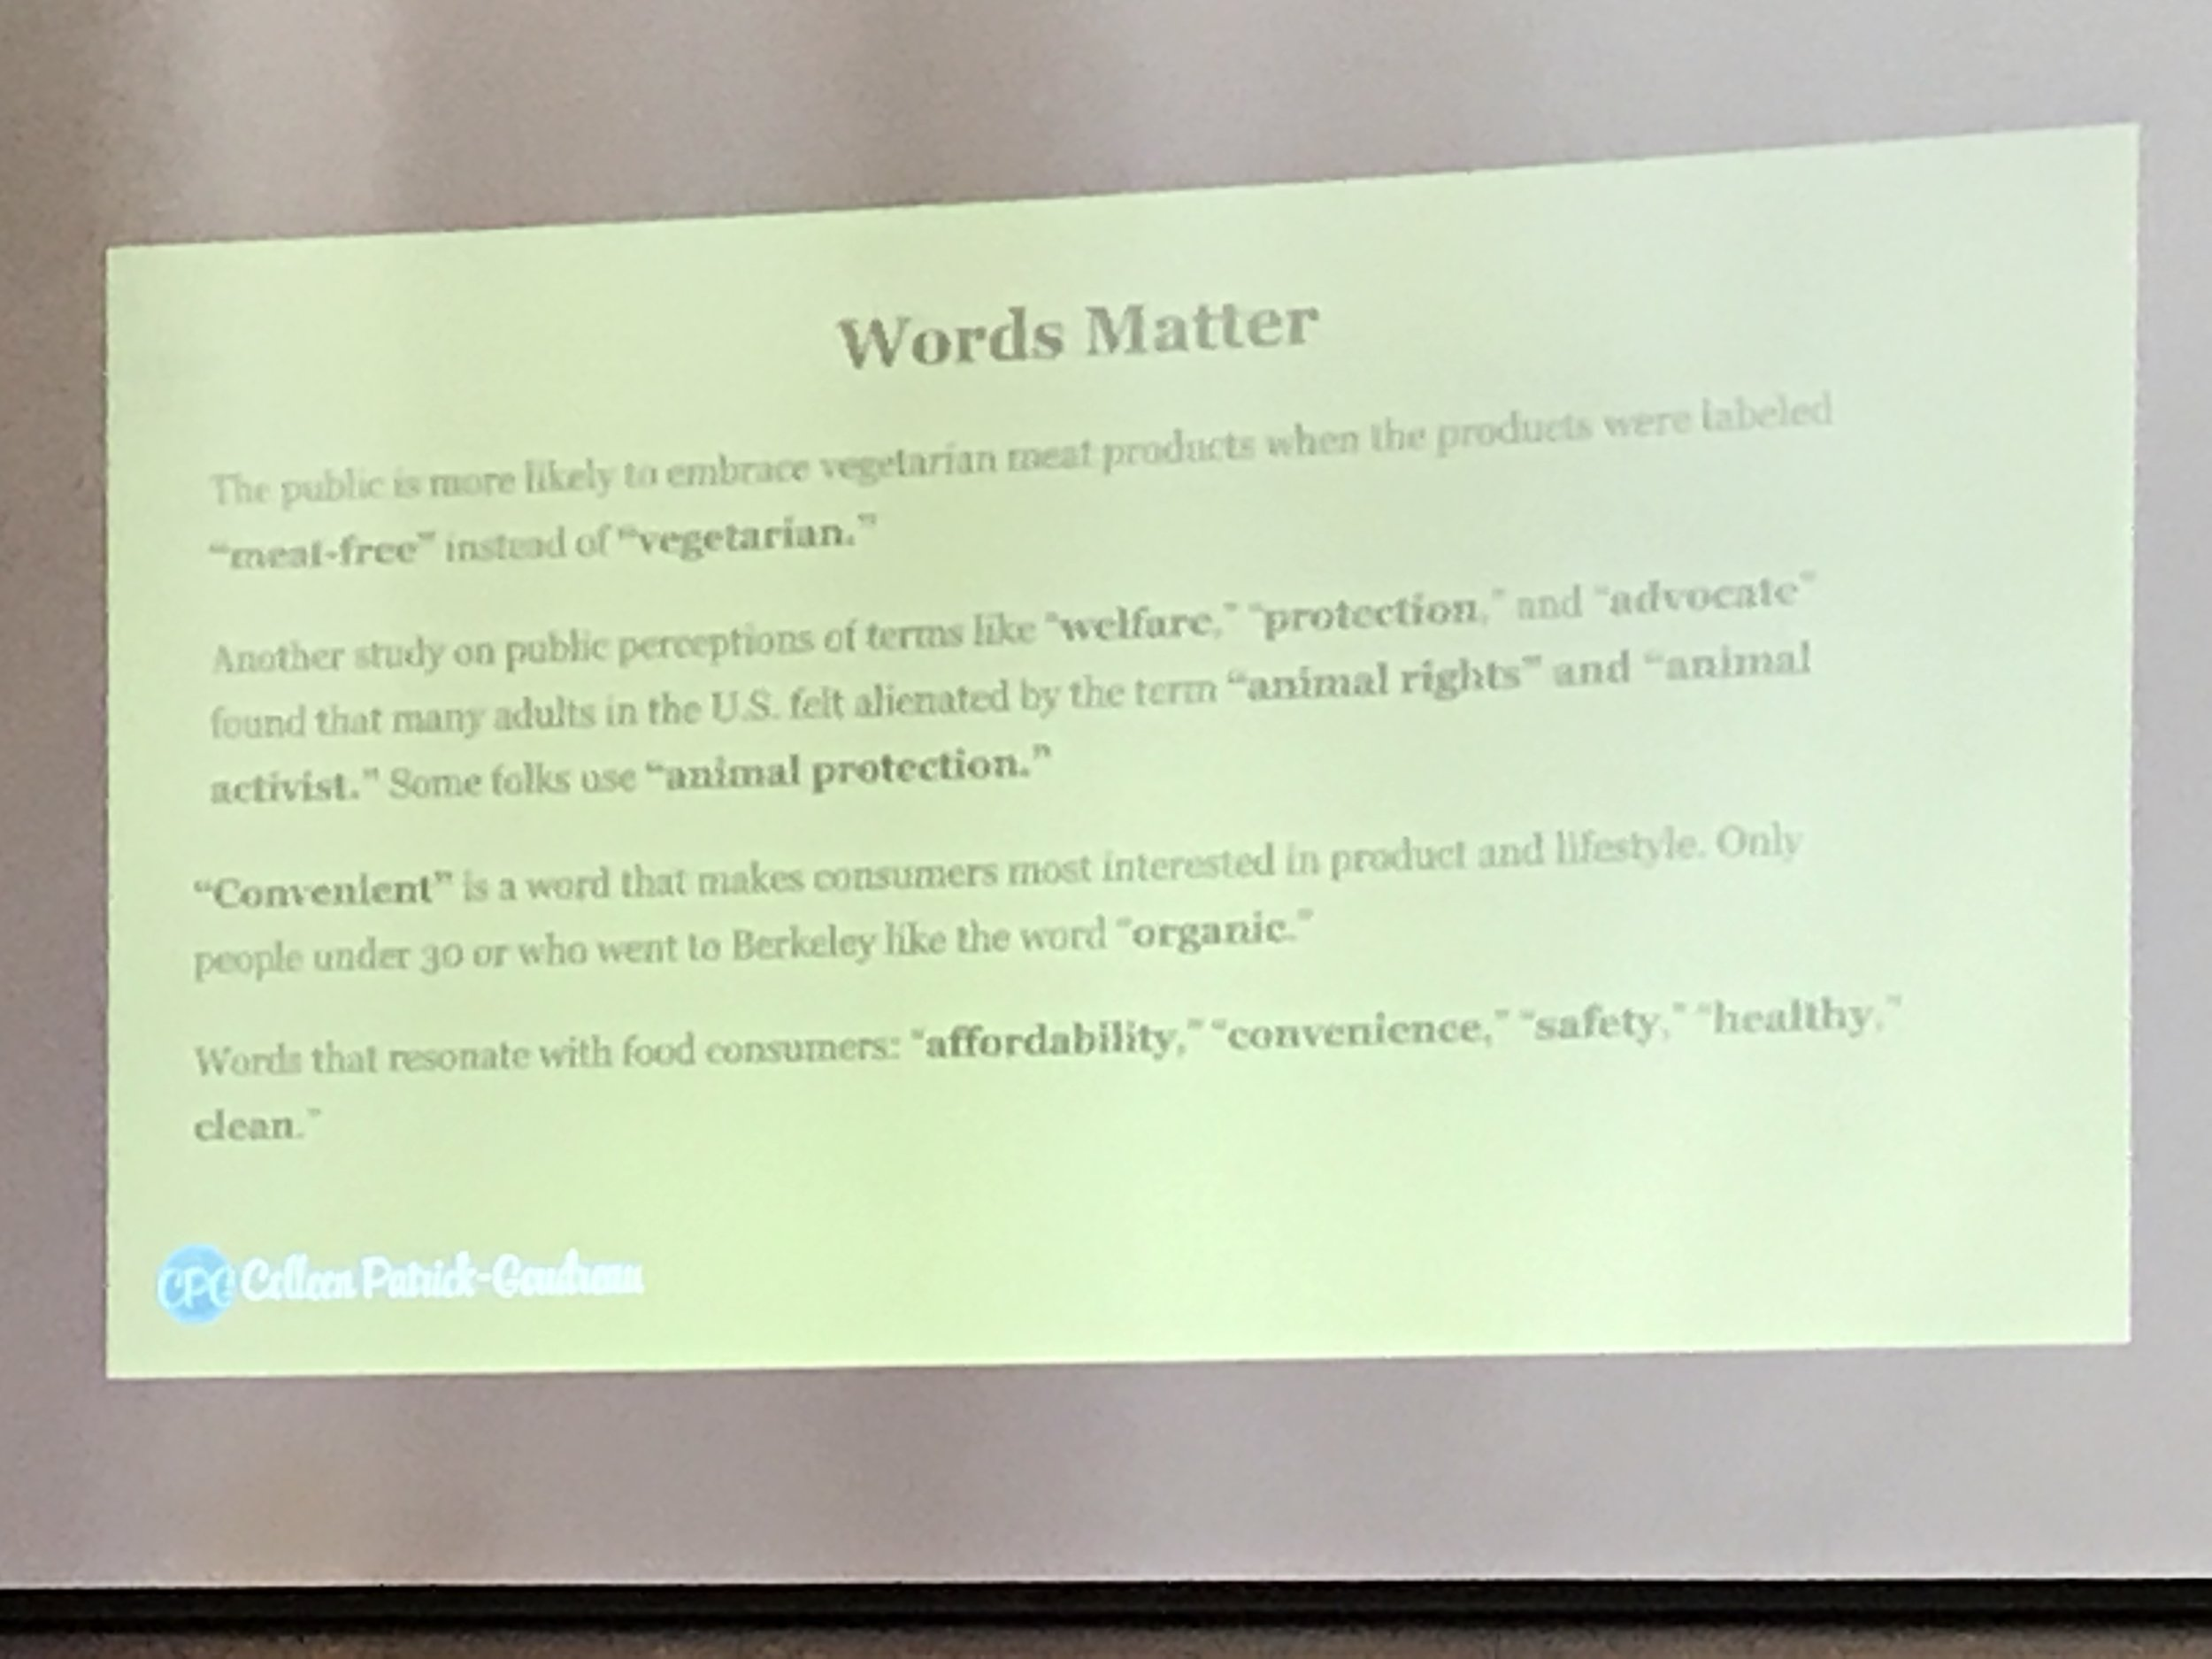 Words matter when communicating our vegan values